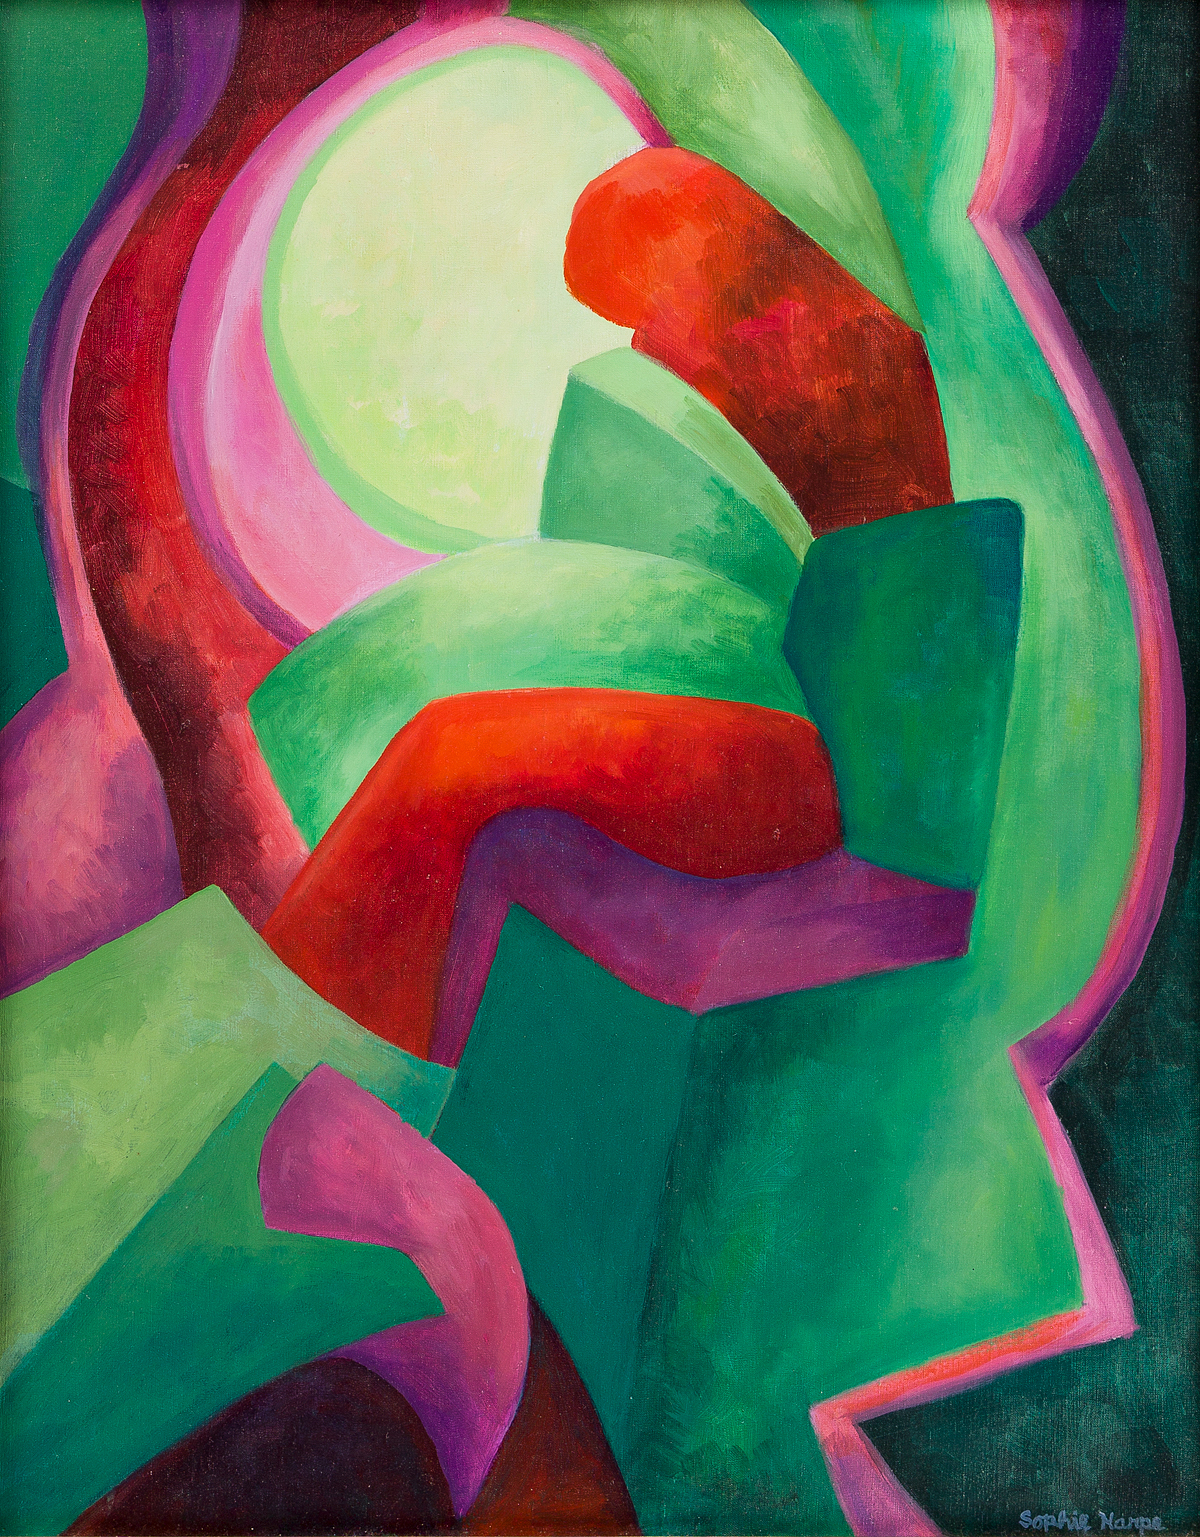 SOPHIE-HARPE-Abstract-Figure